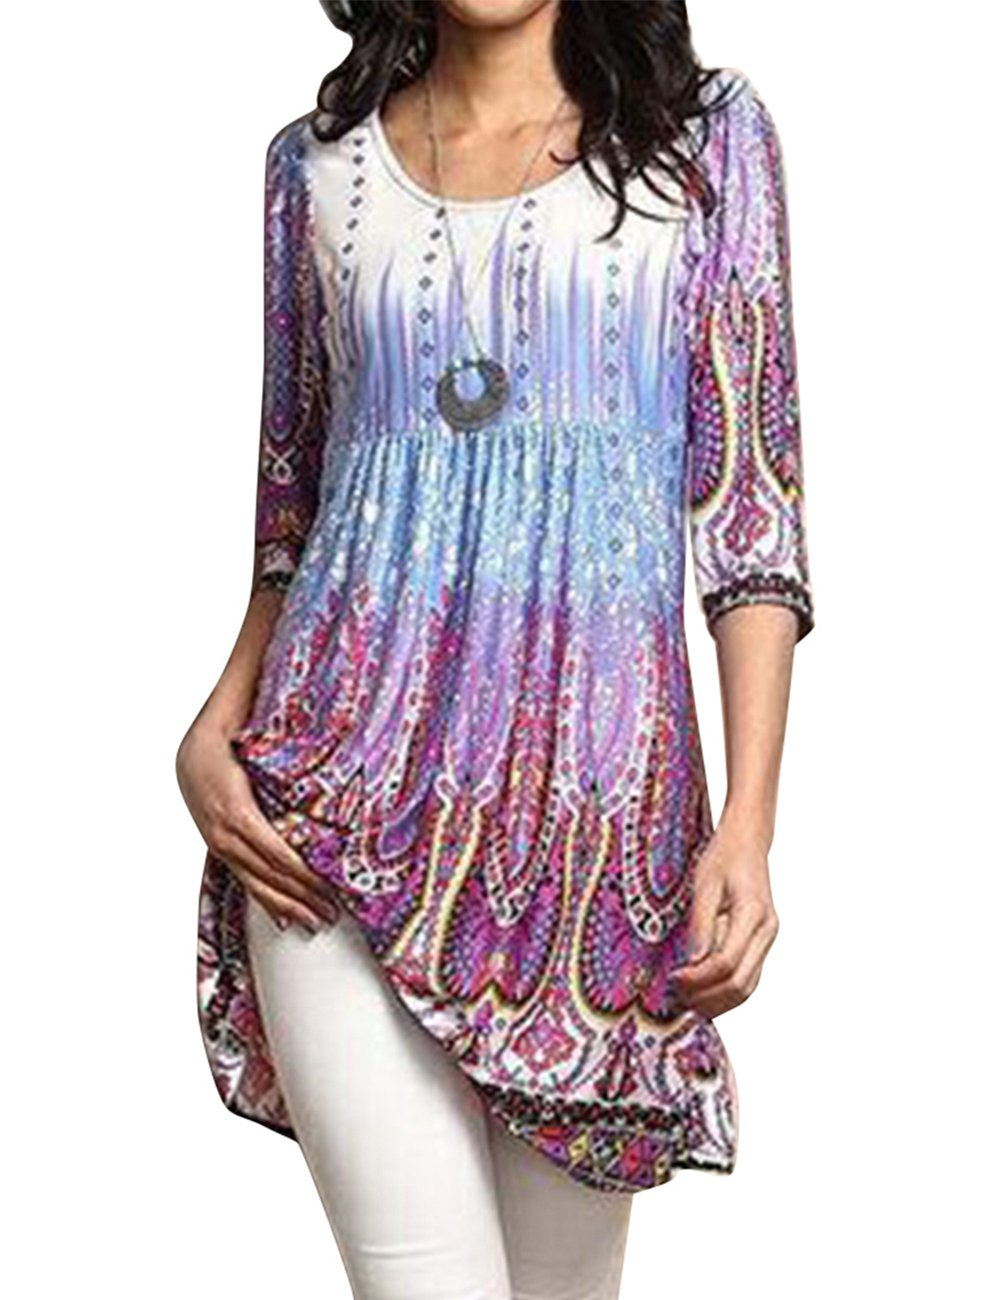 Shineya Womens Floral Vintage Printed Blouse Empire Waist 3/4 Sleeve Tunic Dress Tops Purple